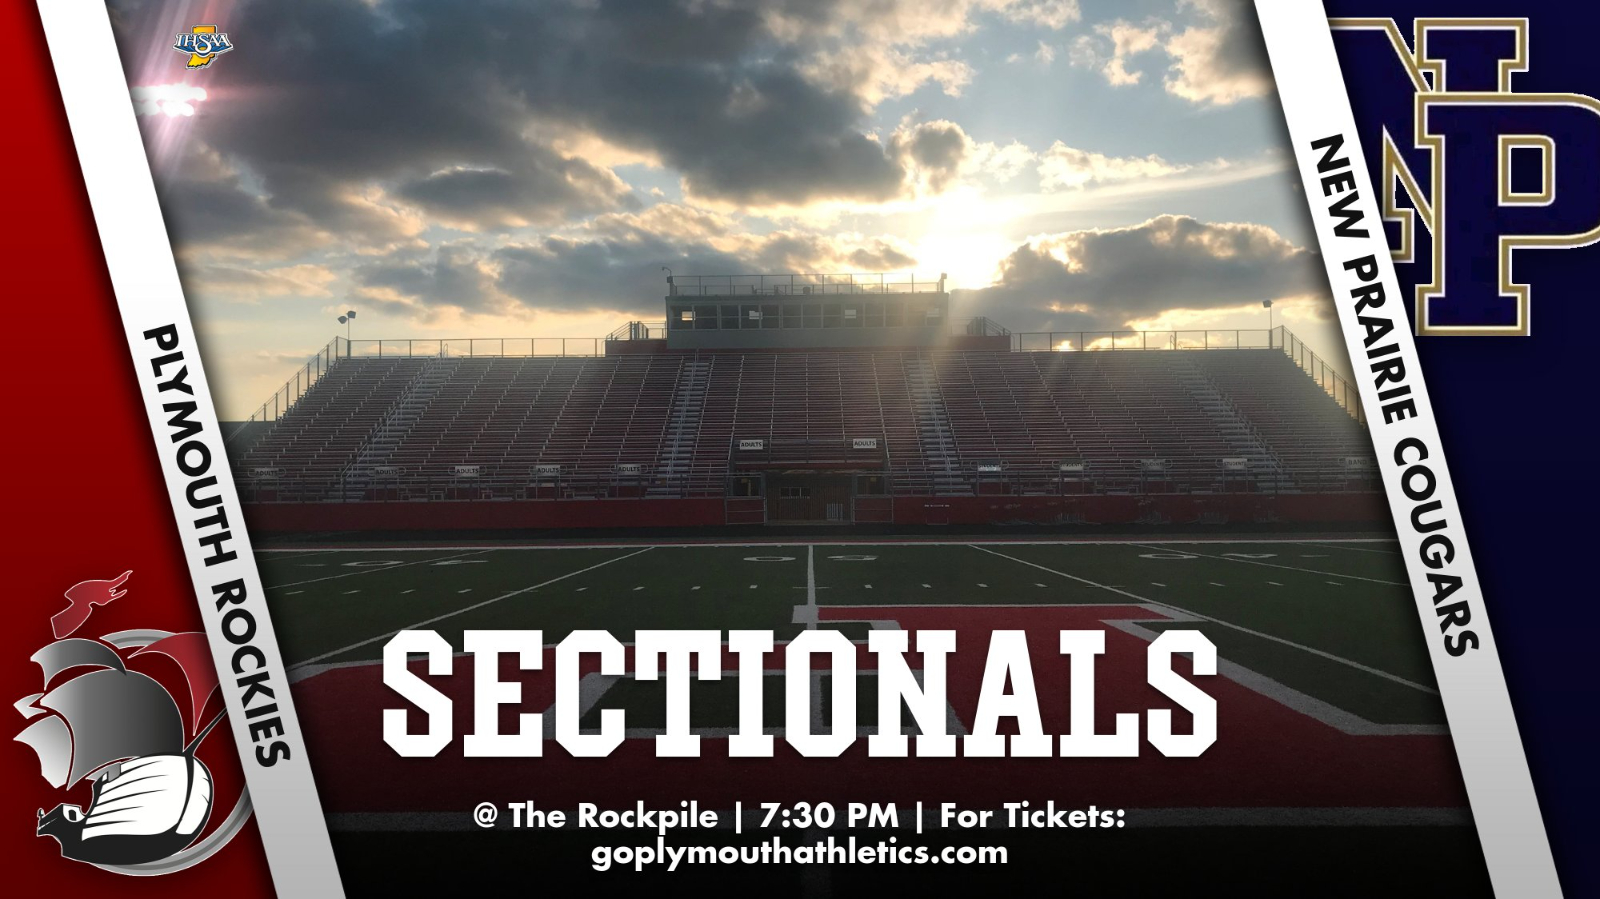 IHSAA Sectional Football Friday  @ The Rockpile (7:30 PM) – TICKETS MUST BE PURCHASED DIGITALLY